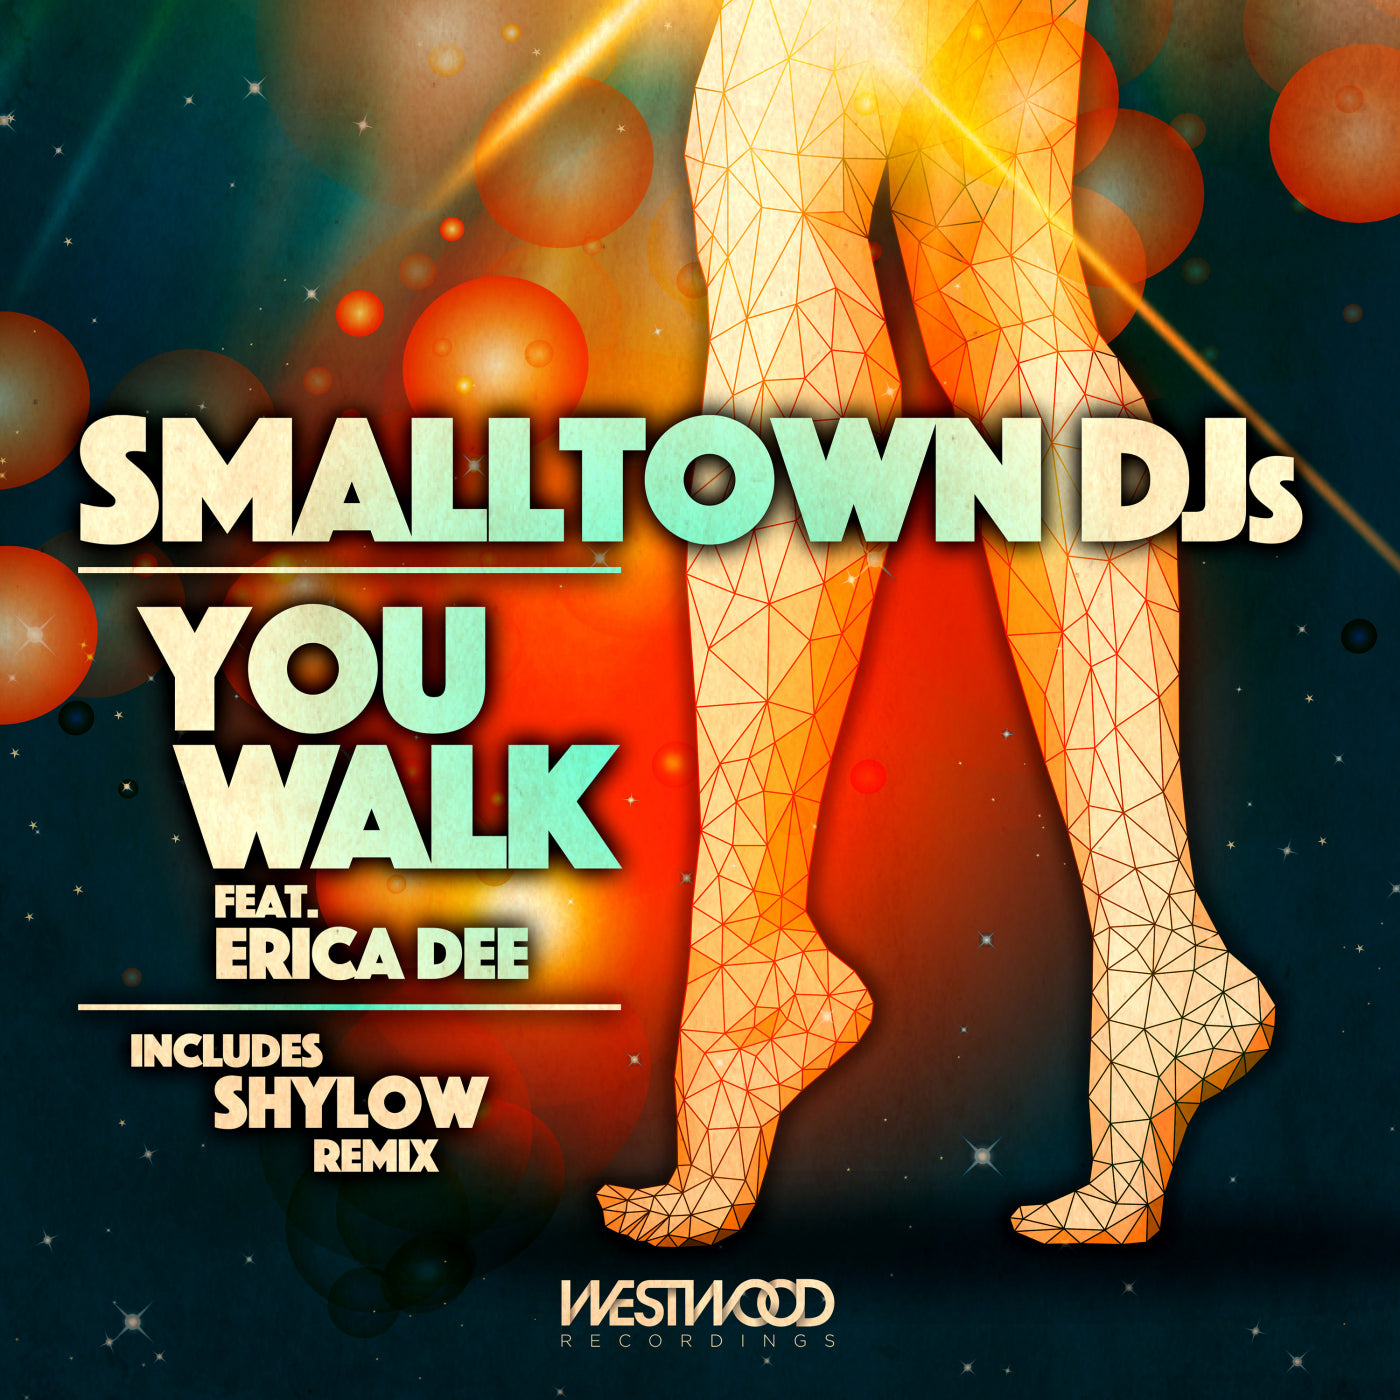 Smalltown DJs - You Walk feat. Erica Dee